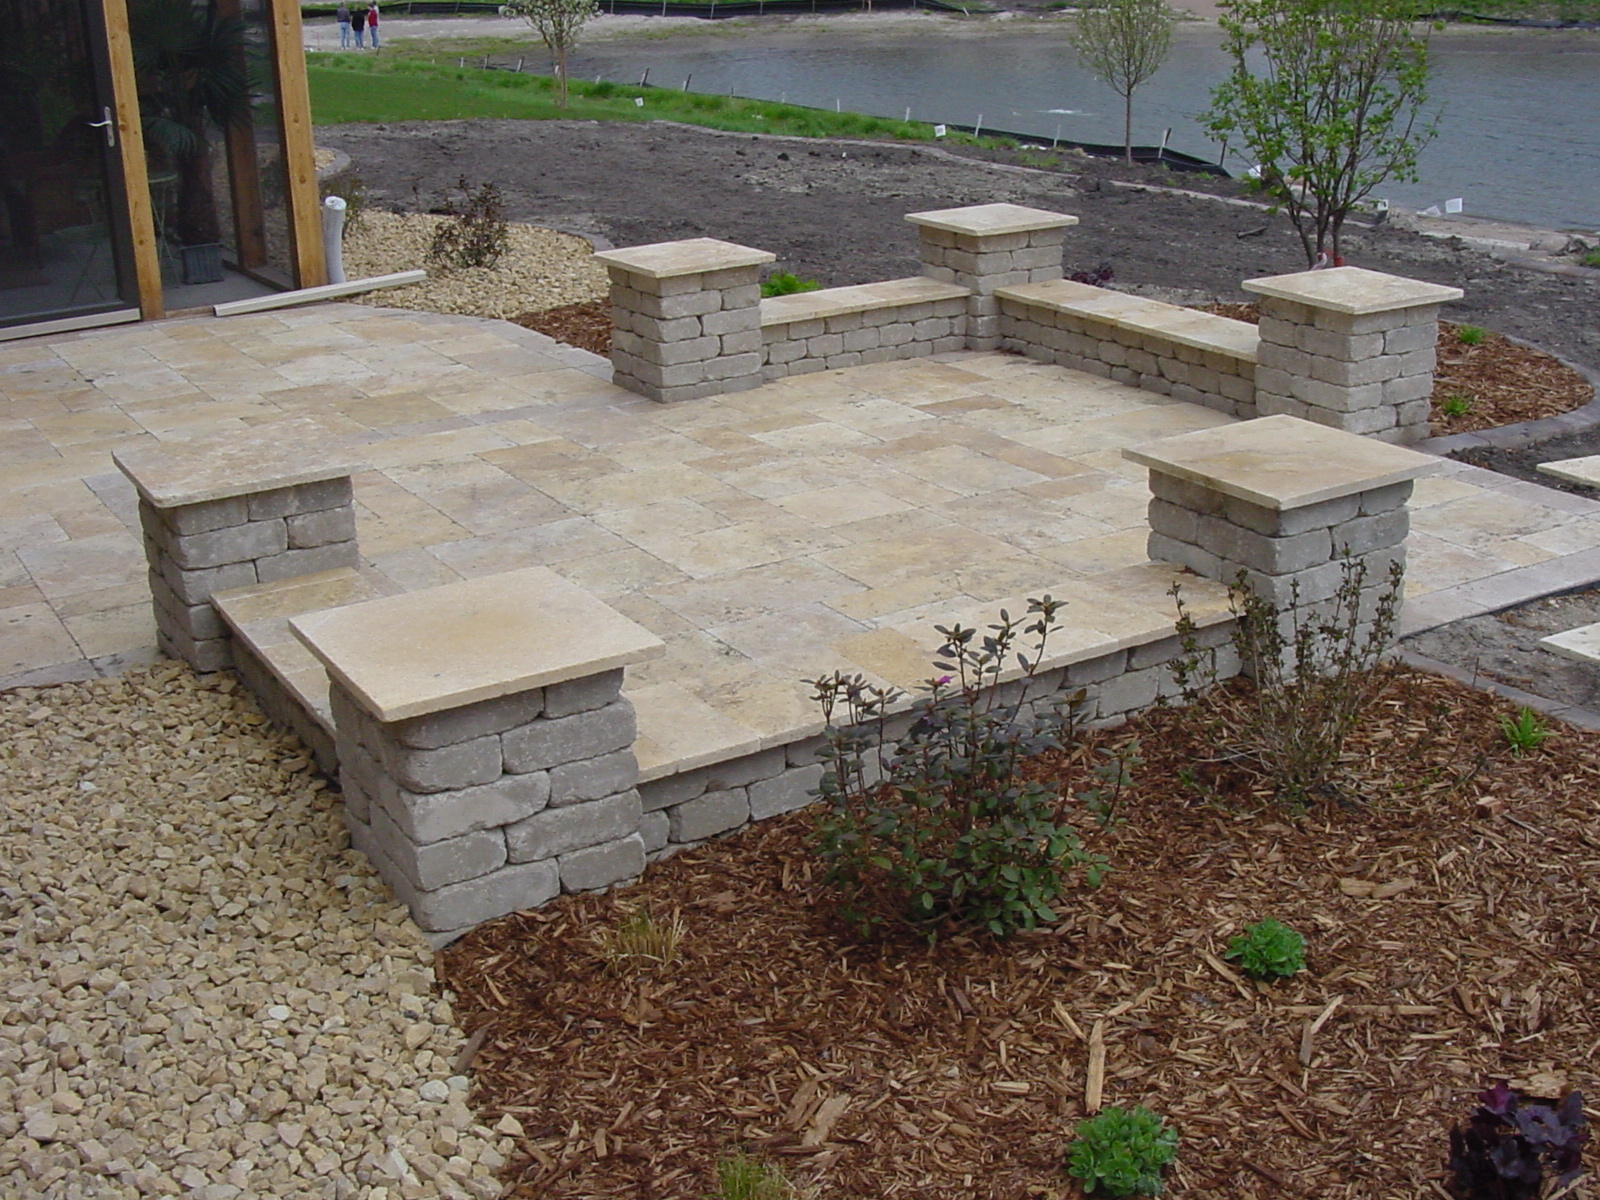 minneapolis landscape brick and stone patio design ideas